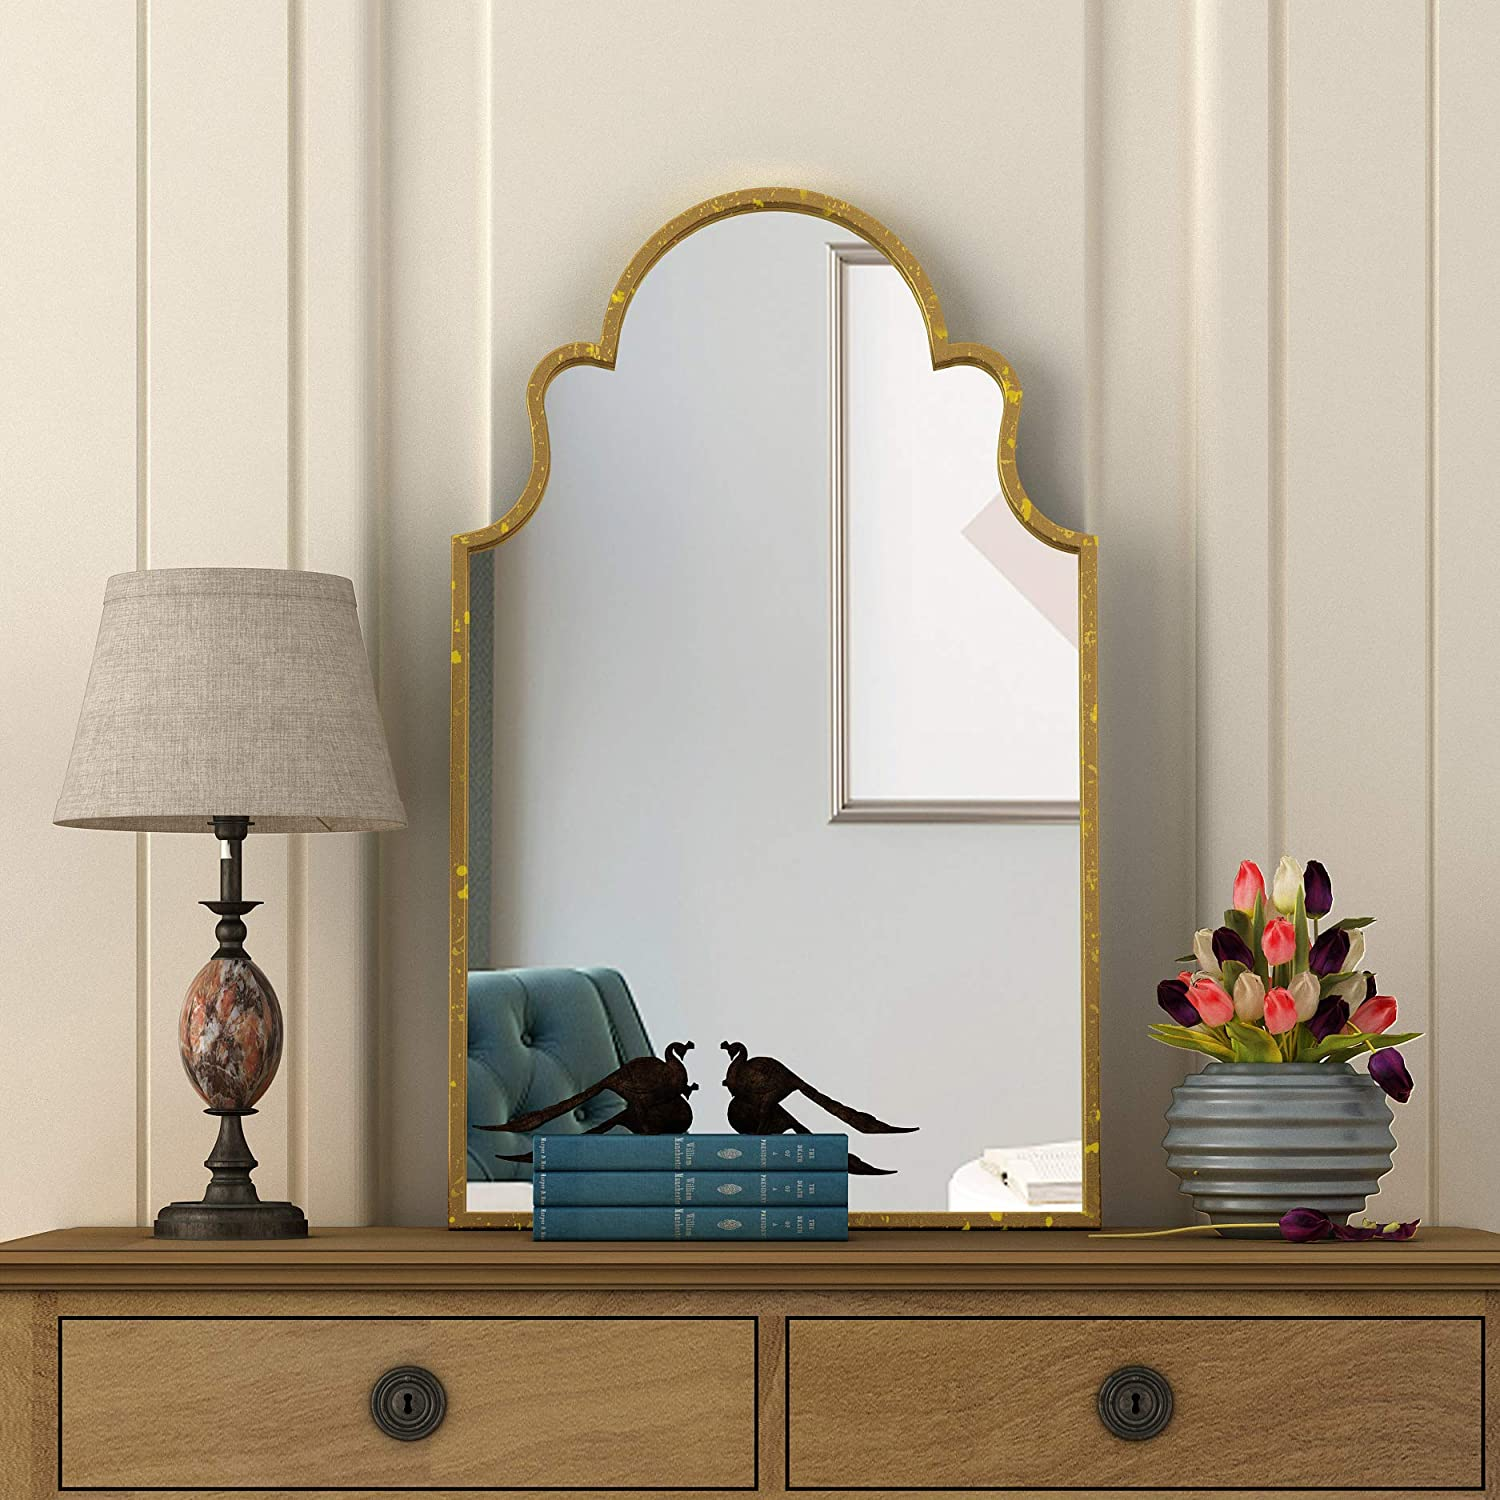 NXHOME Metal-Frame Accent Wall Mirror - Decorative Mirror Gold Vanity Wall Mounted Mirror for Living Room Bathroom Entryway 35.5×21.7 Inch